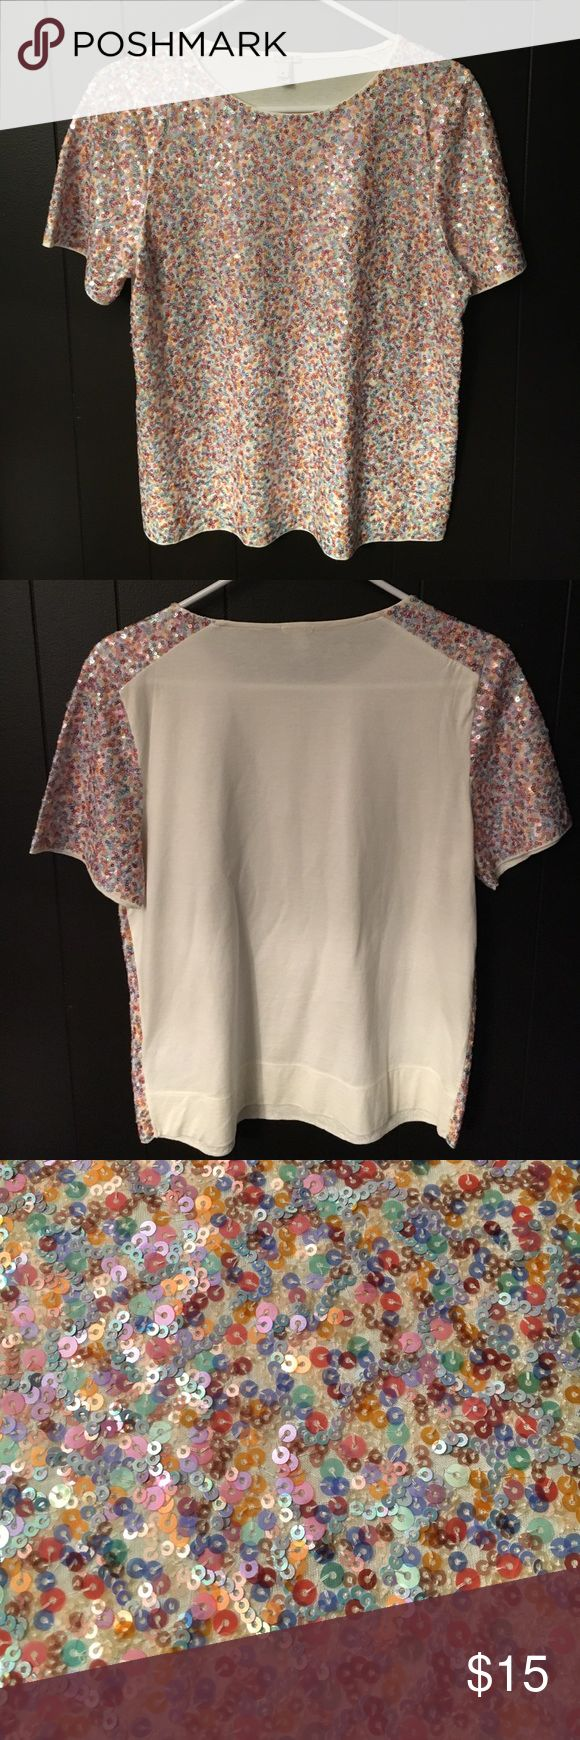 JCrew Sequin TShirt Fun, pastel colored sequin t-shirt that's great to pair with jeans, white pants or a skirt. Worn once. Smoke-free home. jcrew Tops Tees - Short Sleeve